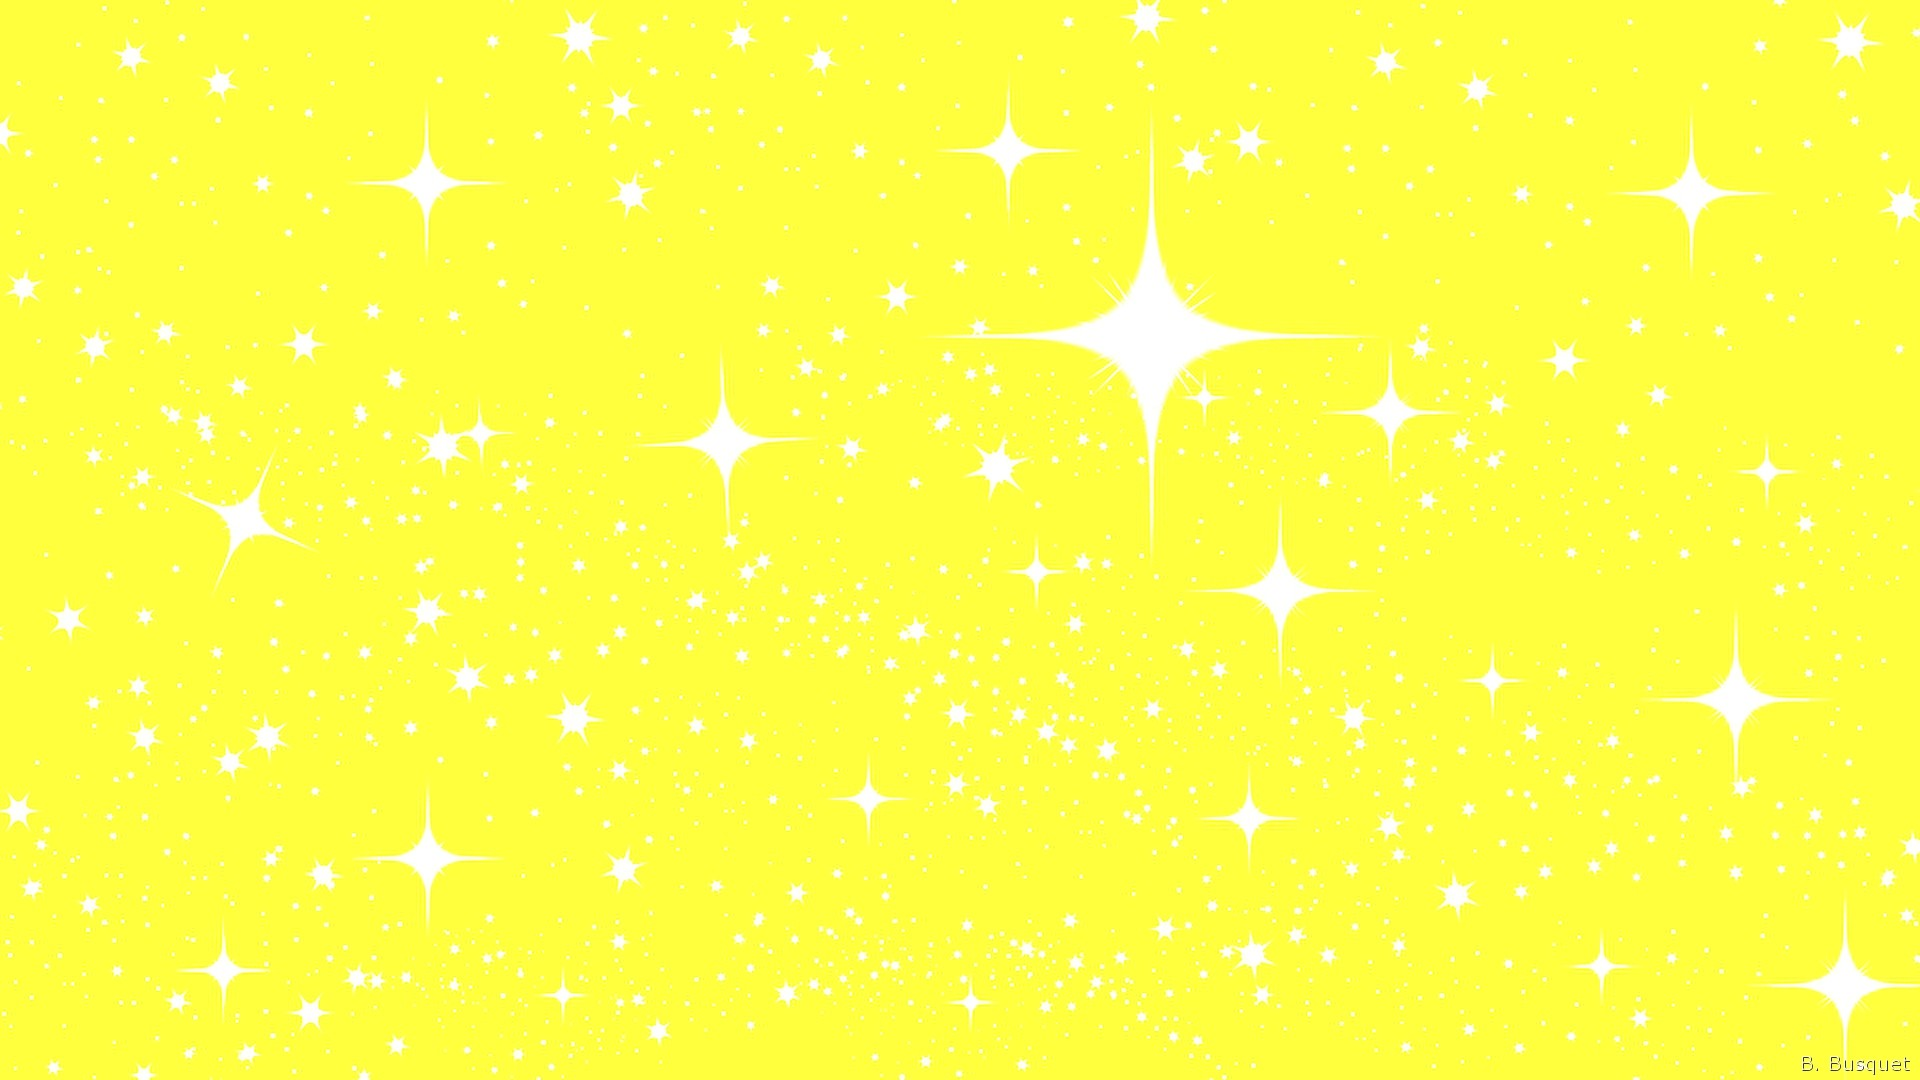 1920x1080 High Quality Neon Yellow Wallpapers